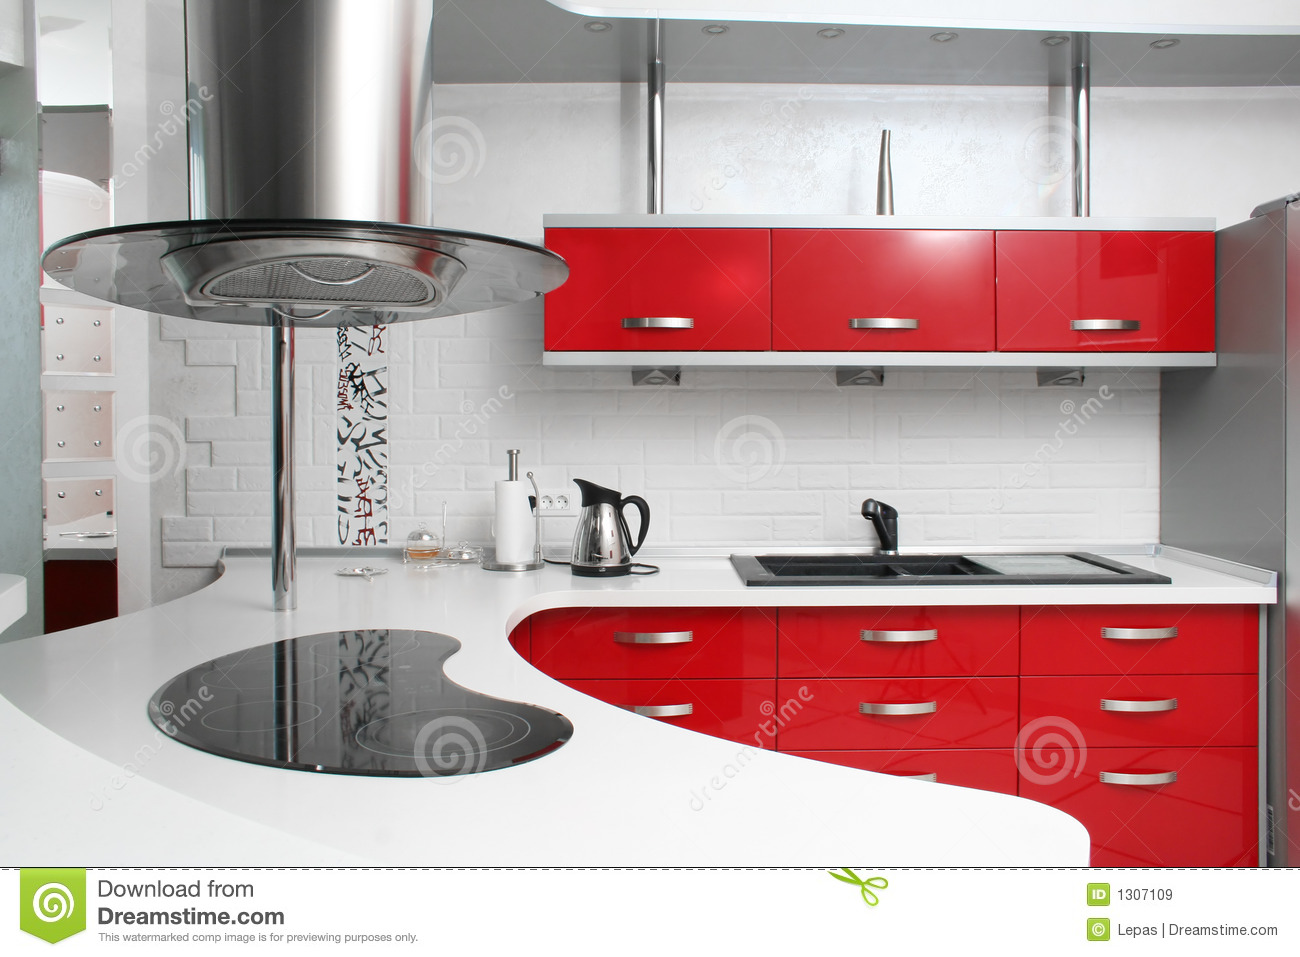 Red Kitchen Royalty Free Stock Images  Image 1307109